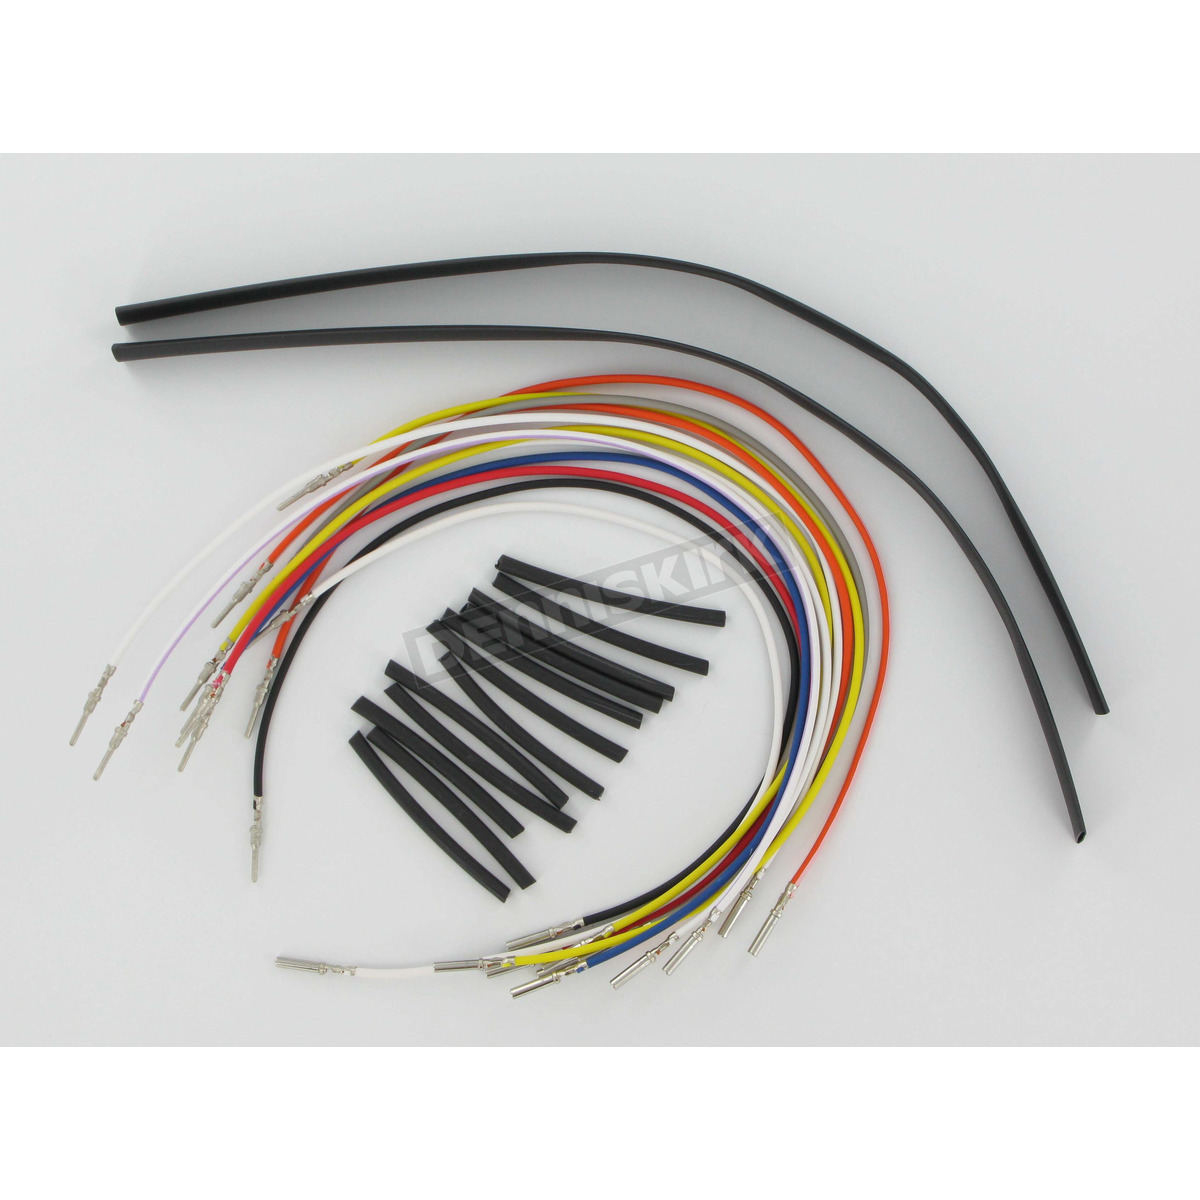 dk211741 novello 4 in handlebar wire harness extension kit nil wh4 harley davidson wiring harness extension at nearapp.co